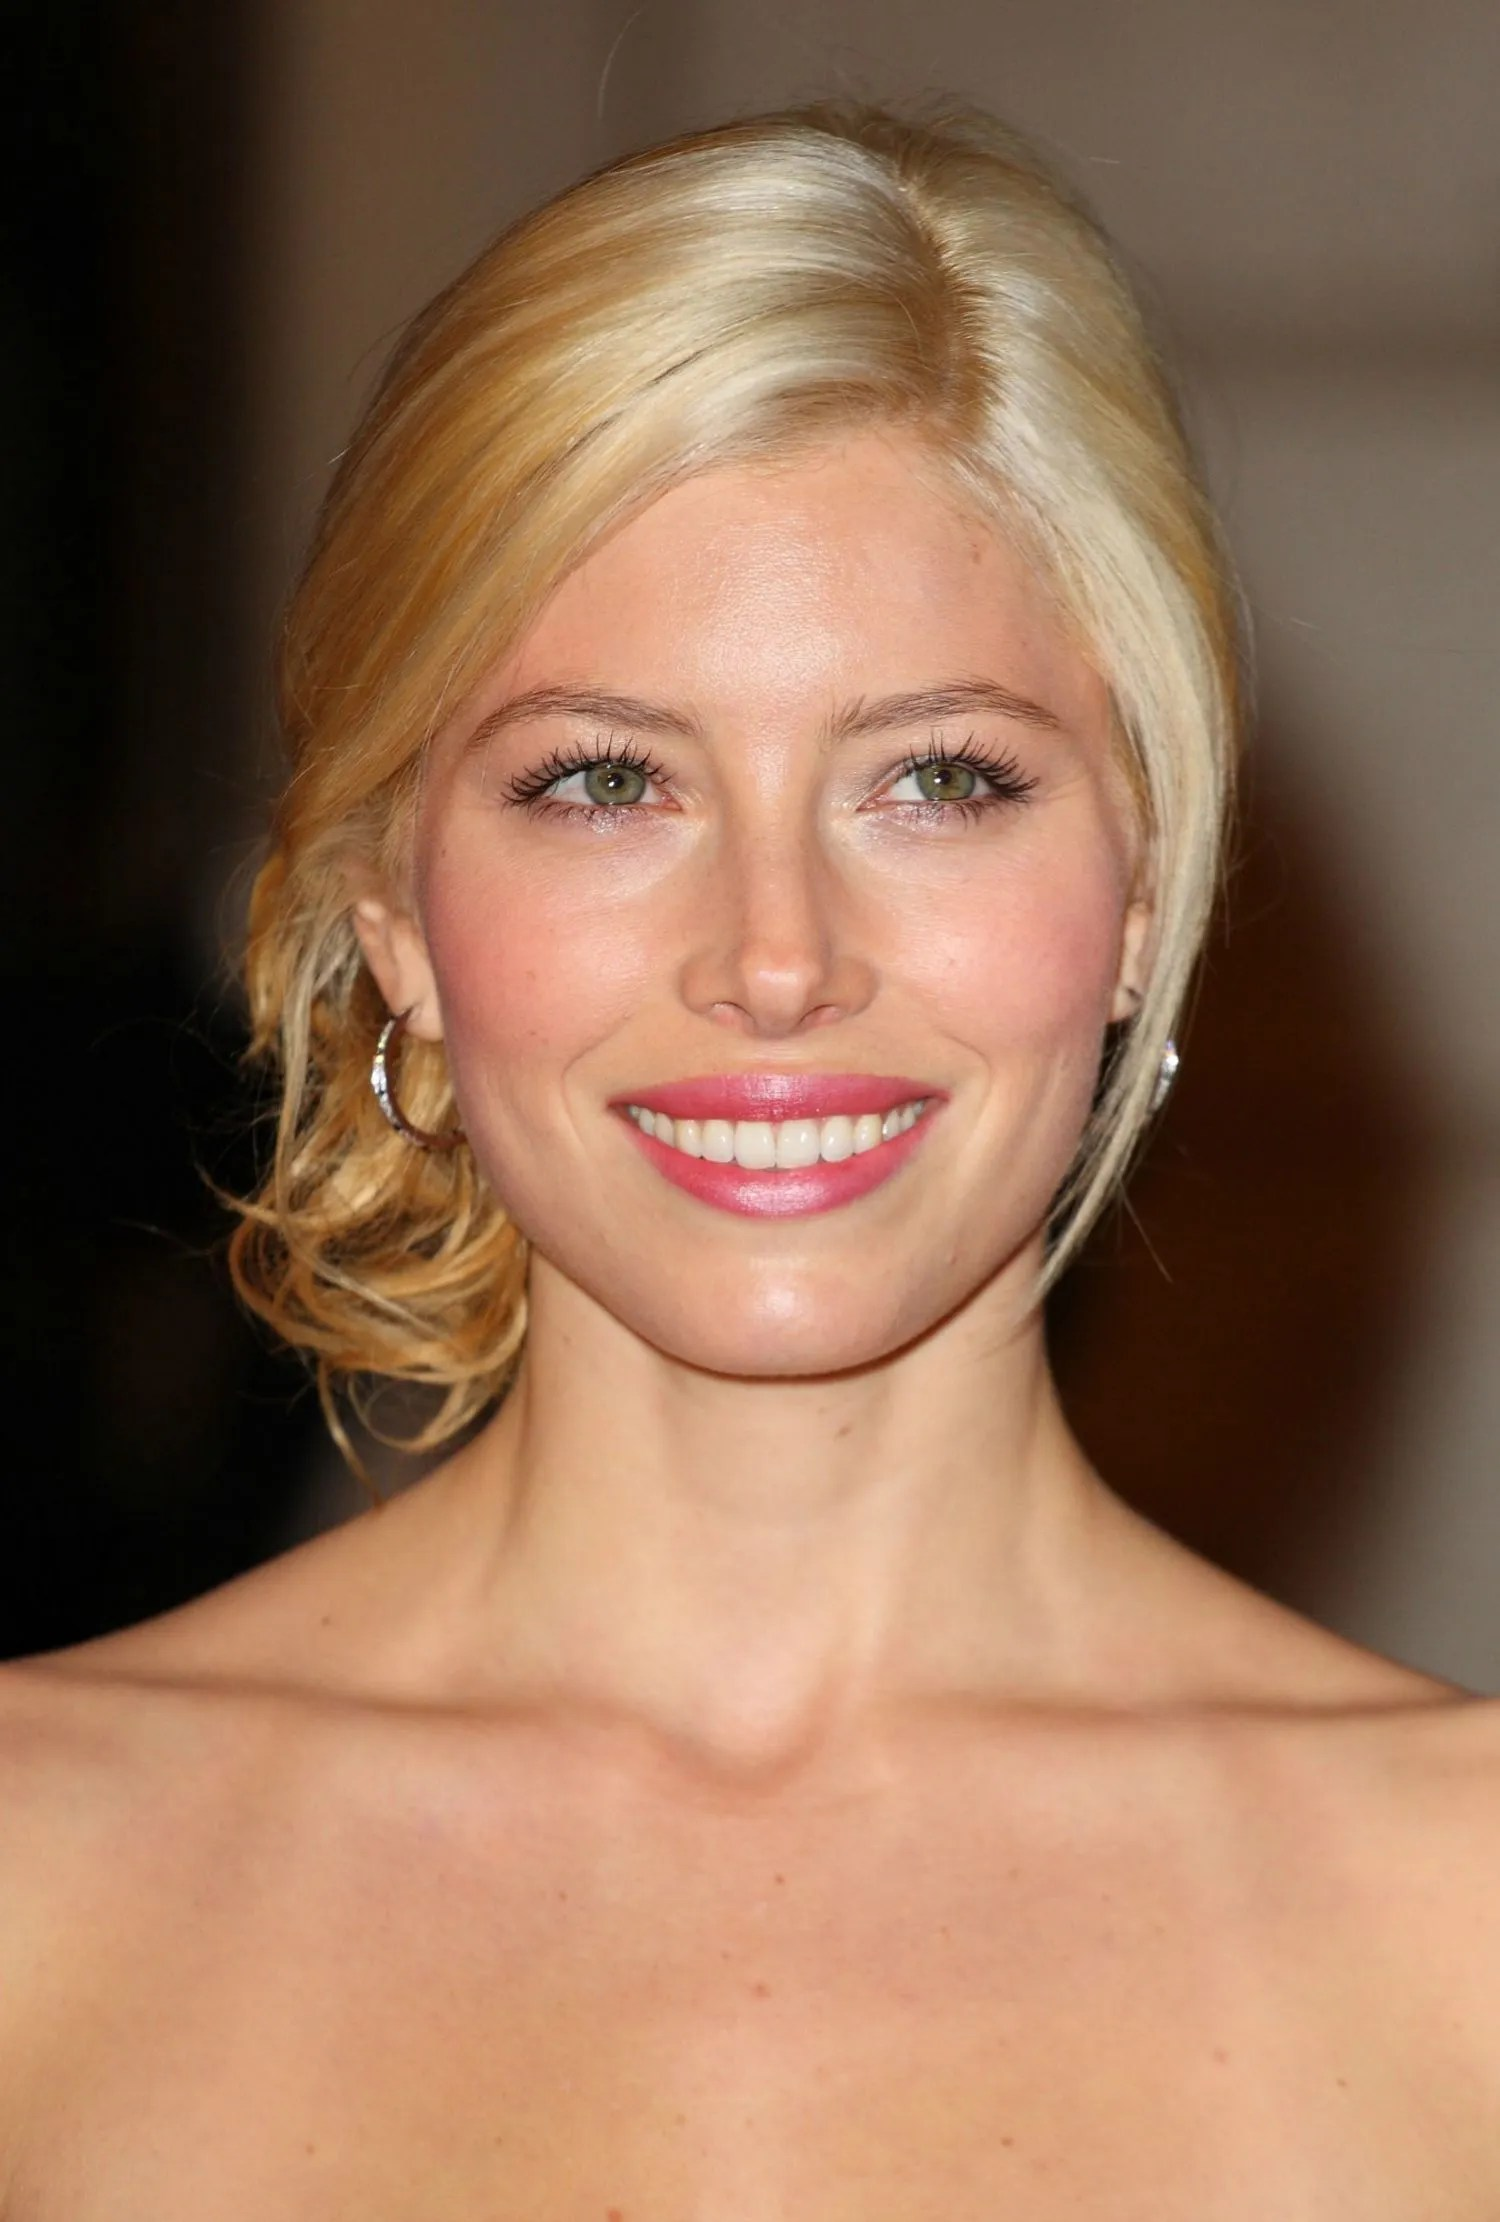 Brunette Celebrities Whove Dyed Their Hair Blond Glamour